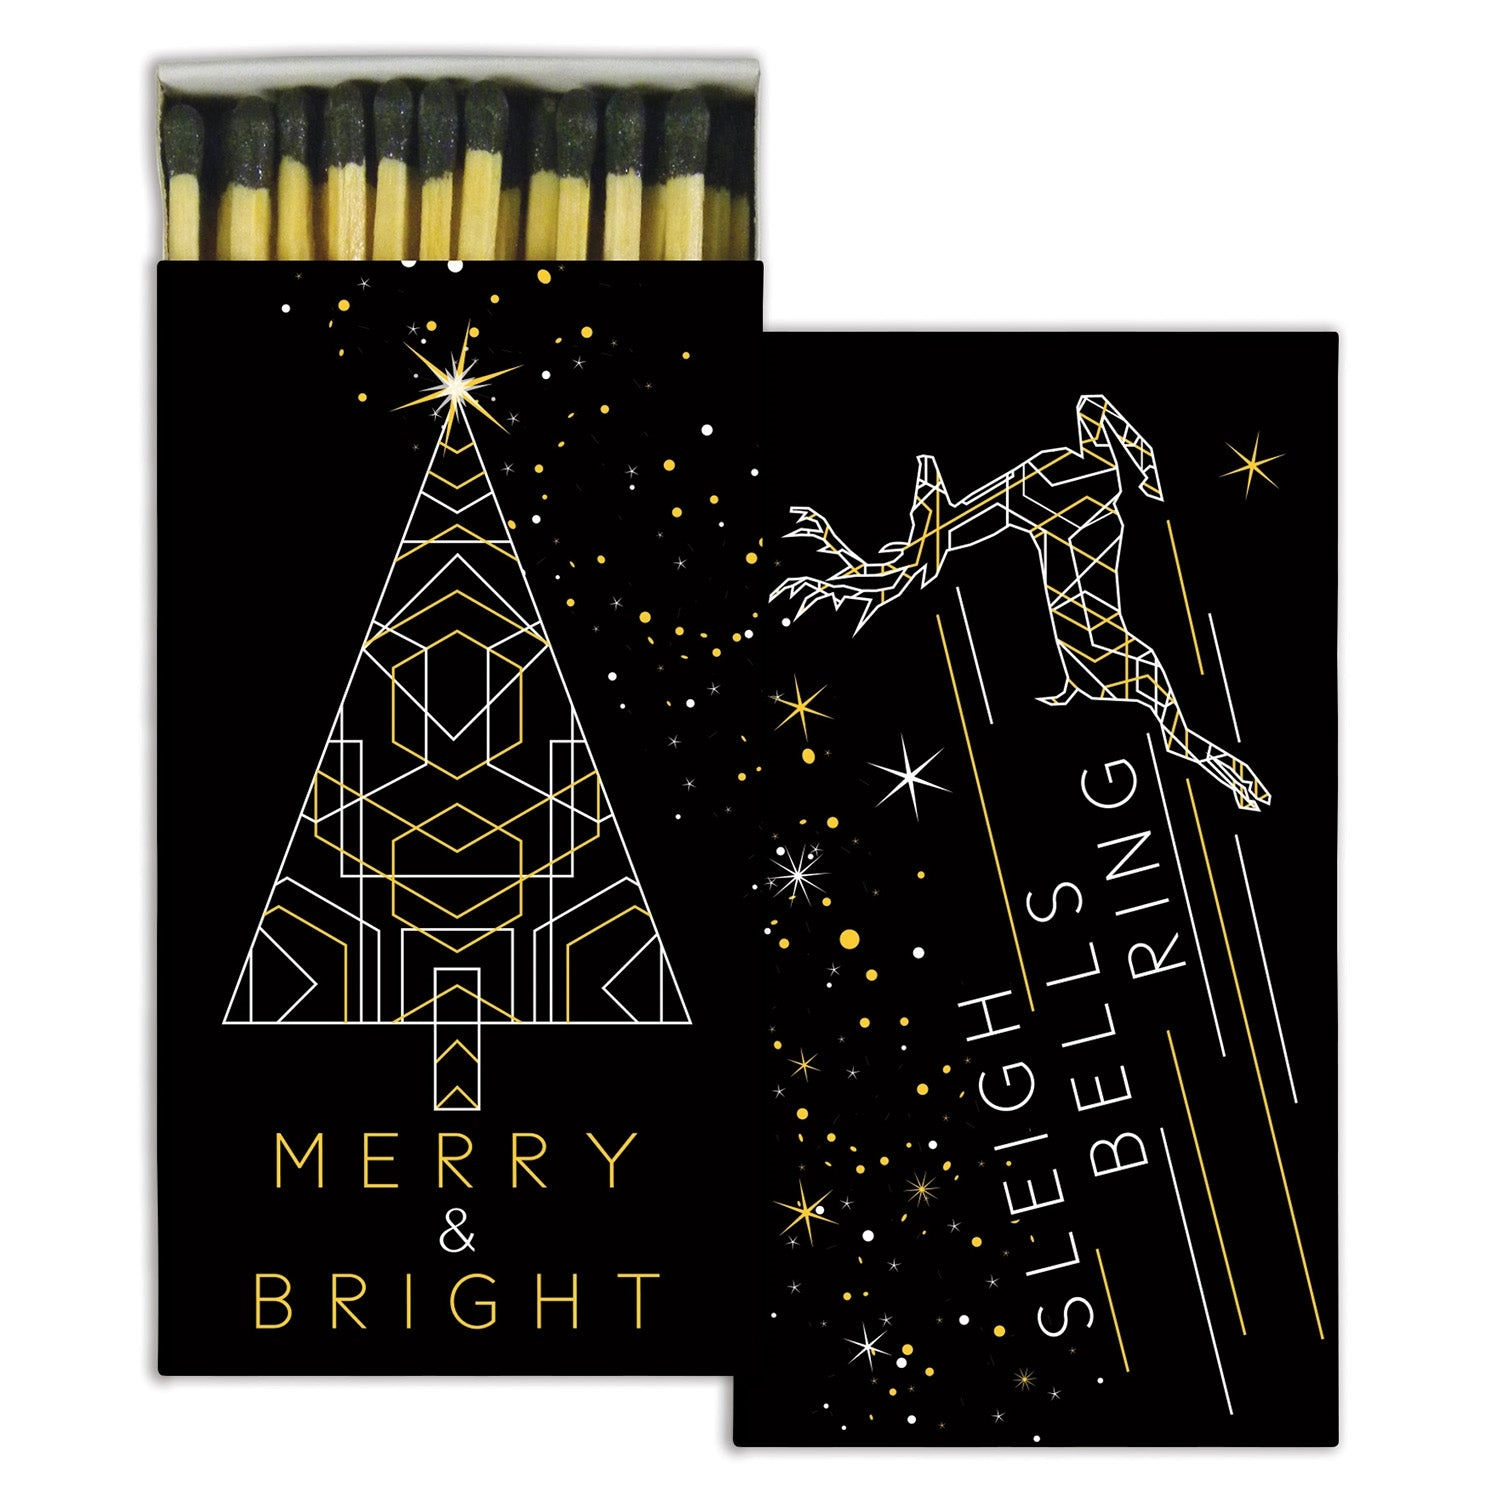 Matches - Merry and Bright - Gold Foil